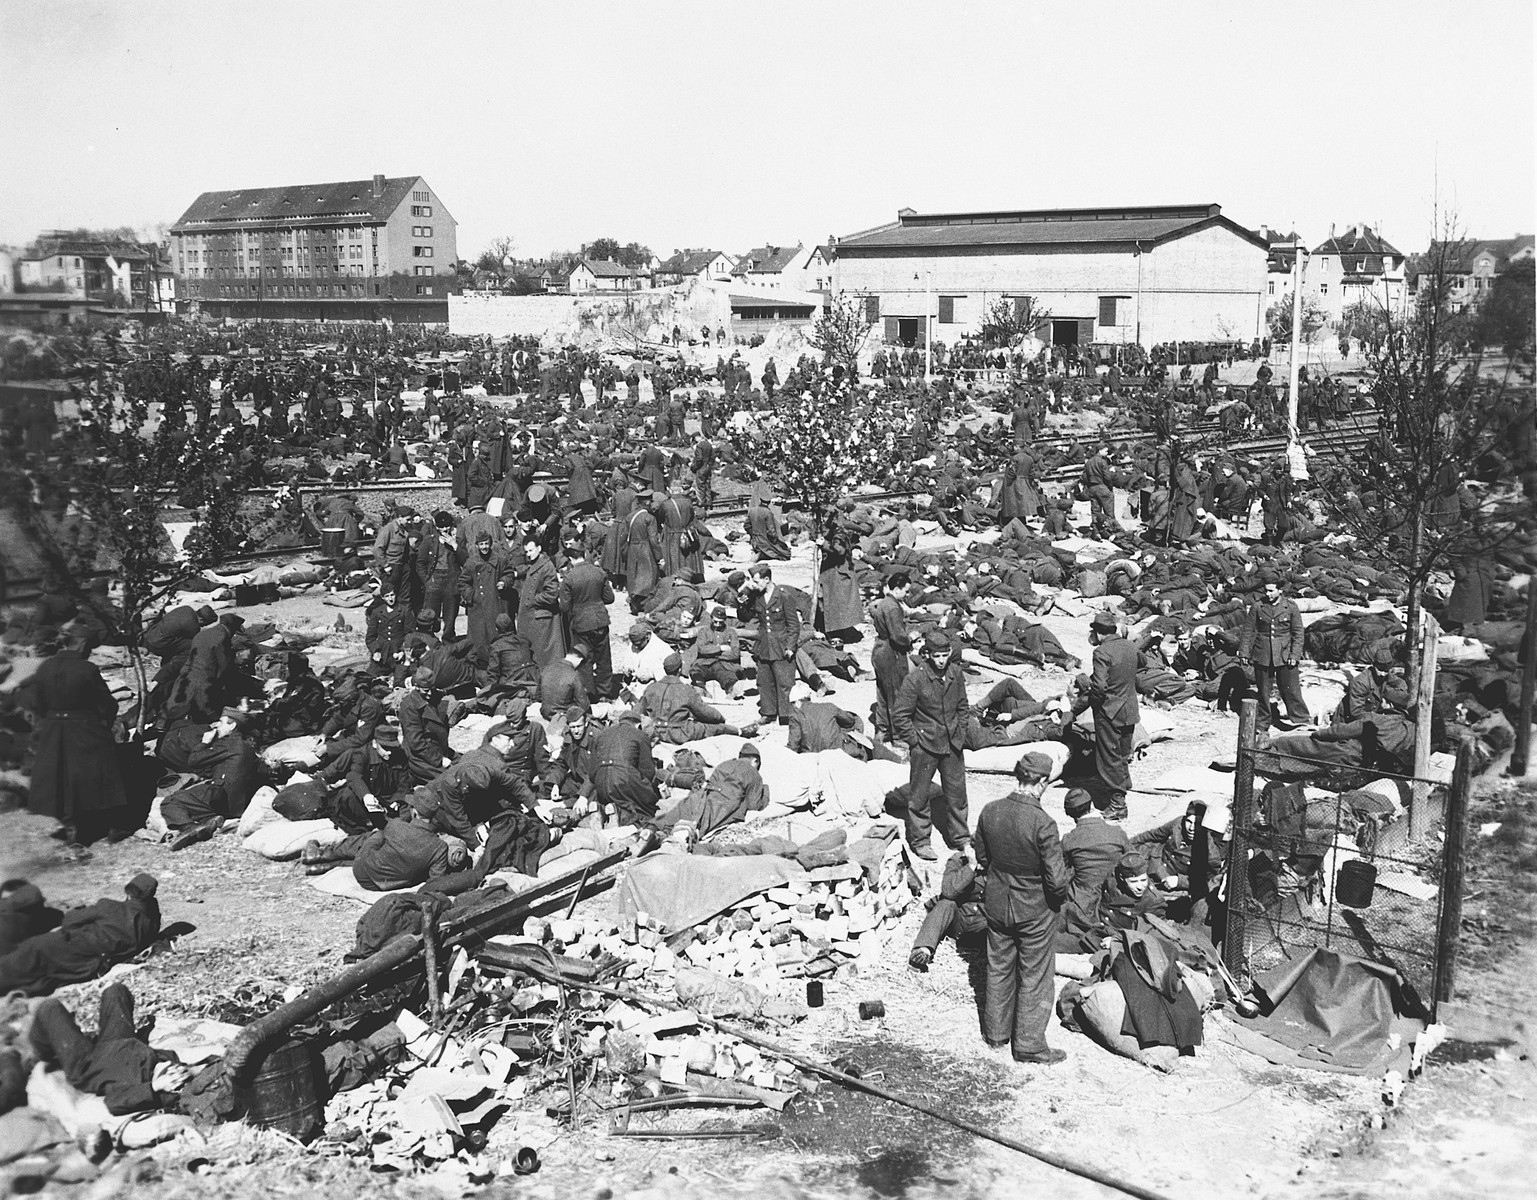 German POWs crowd into a large public square covered with rubble.